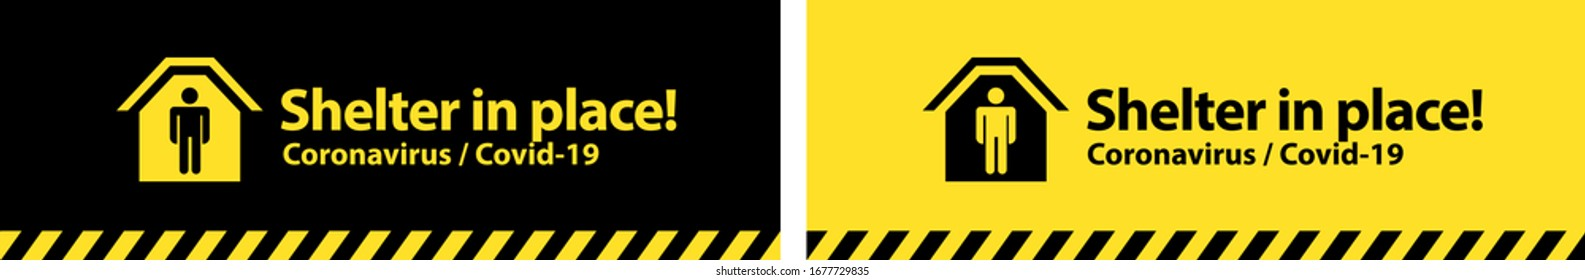 Shelter in place on yellow and black background